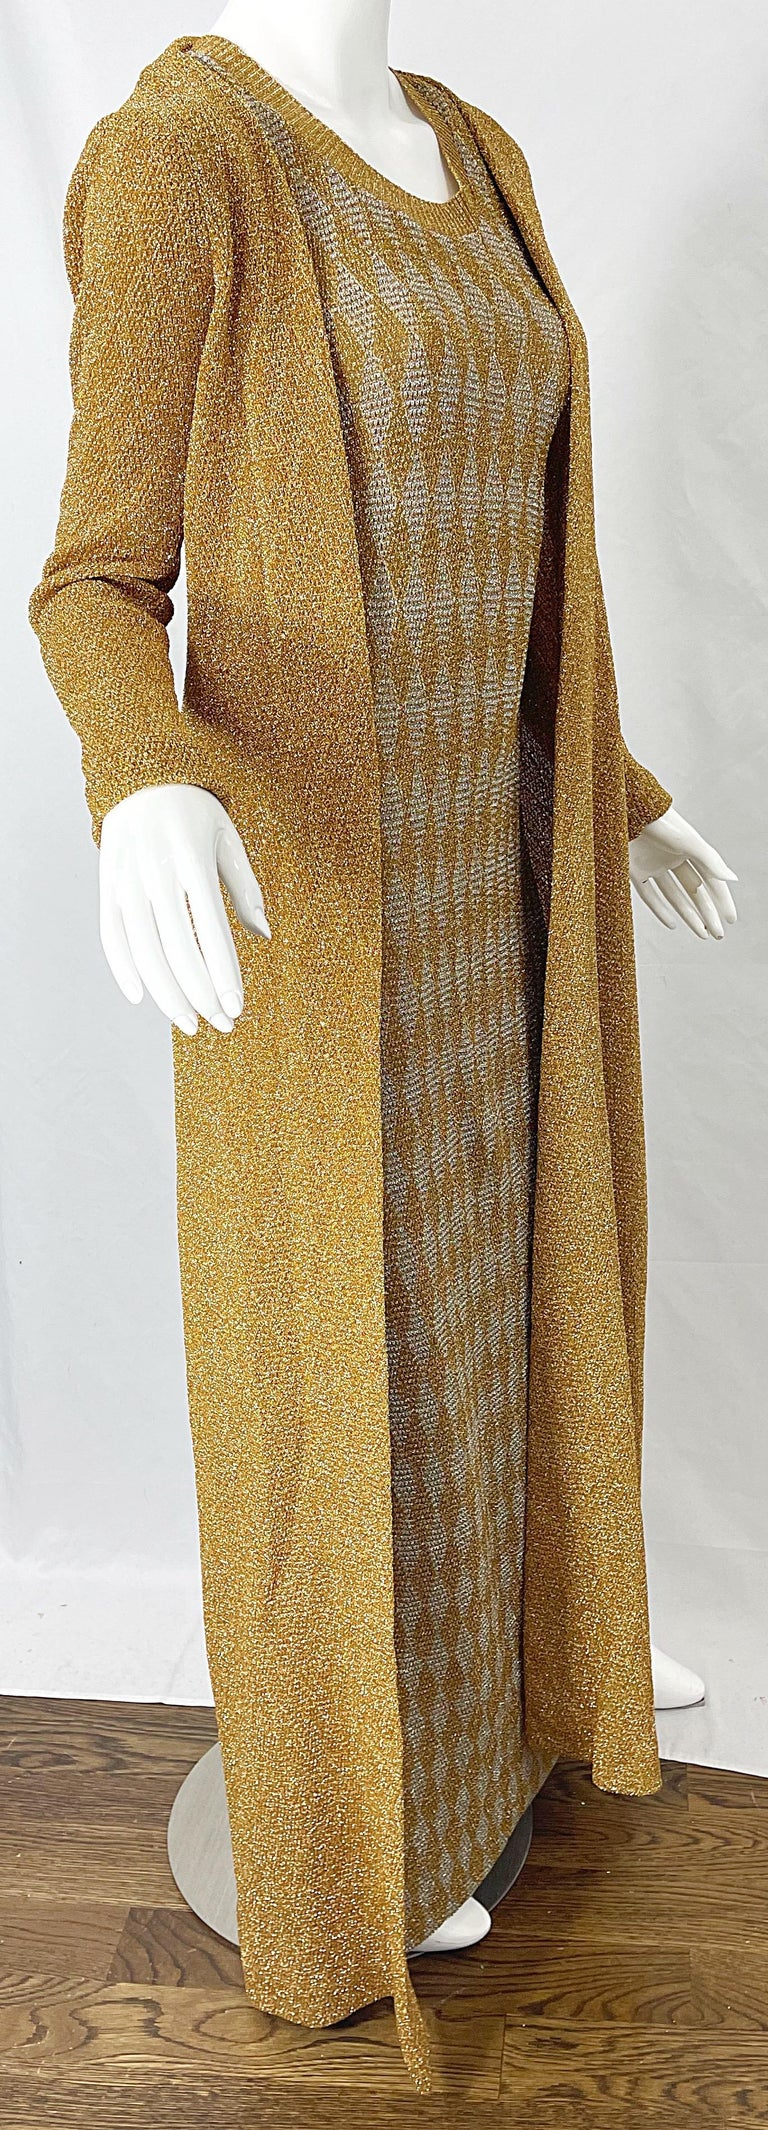 1970s Halston NWT Gold + Silver 70s Vintage Lurex Gown + Duster Cardigan For Sale 8